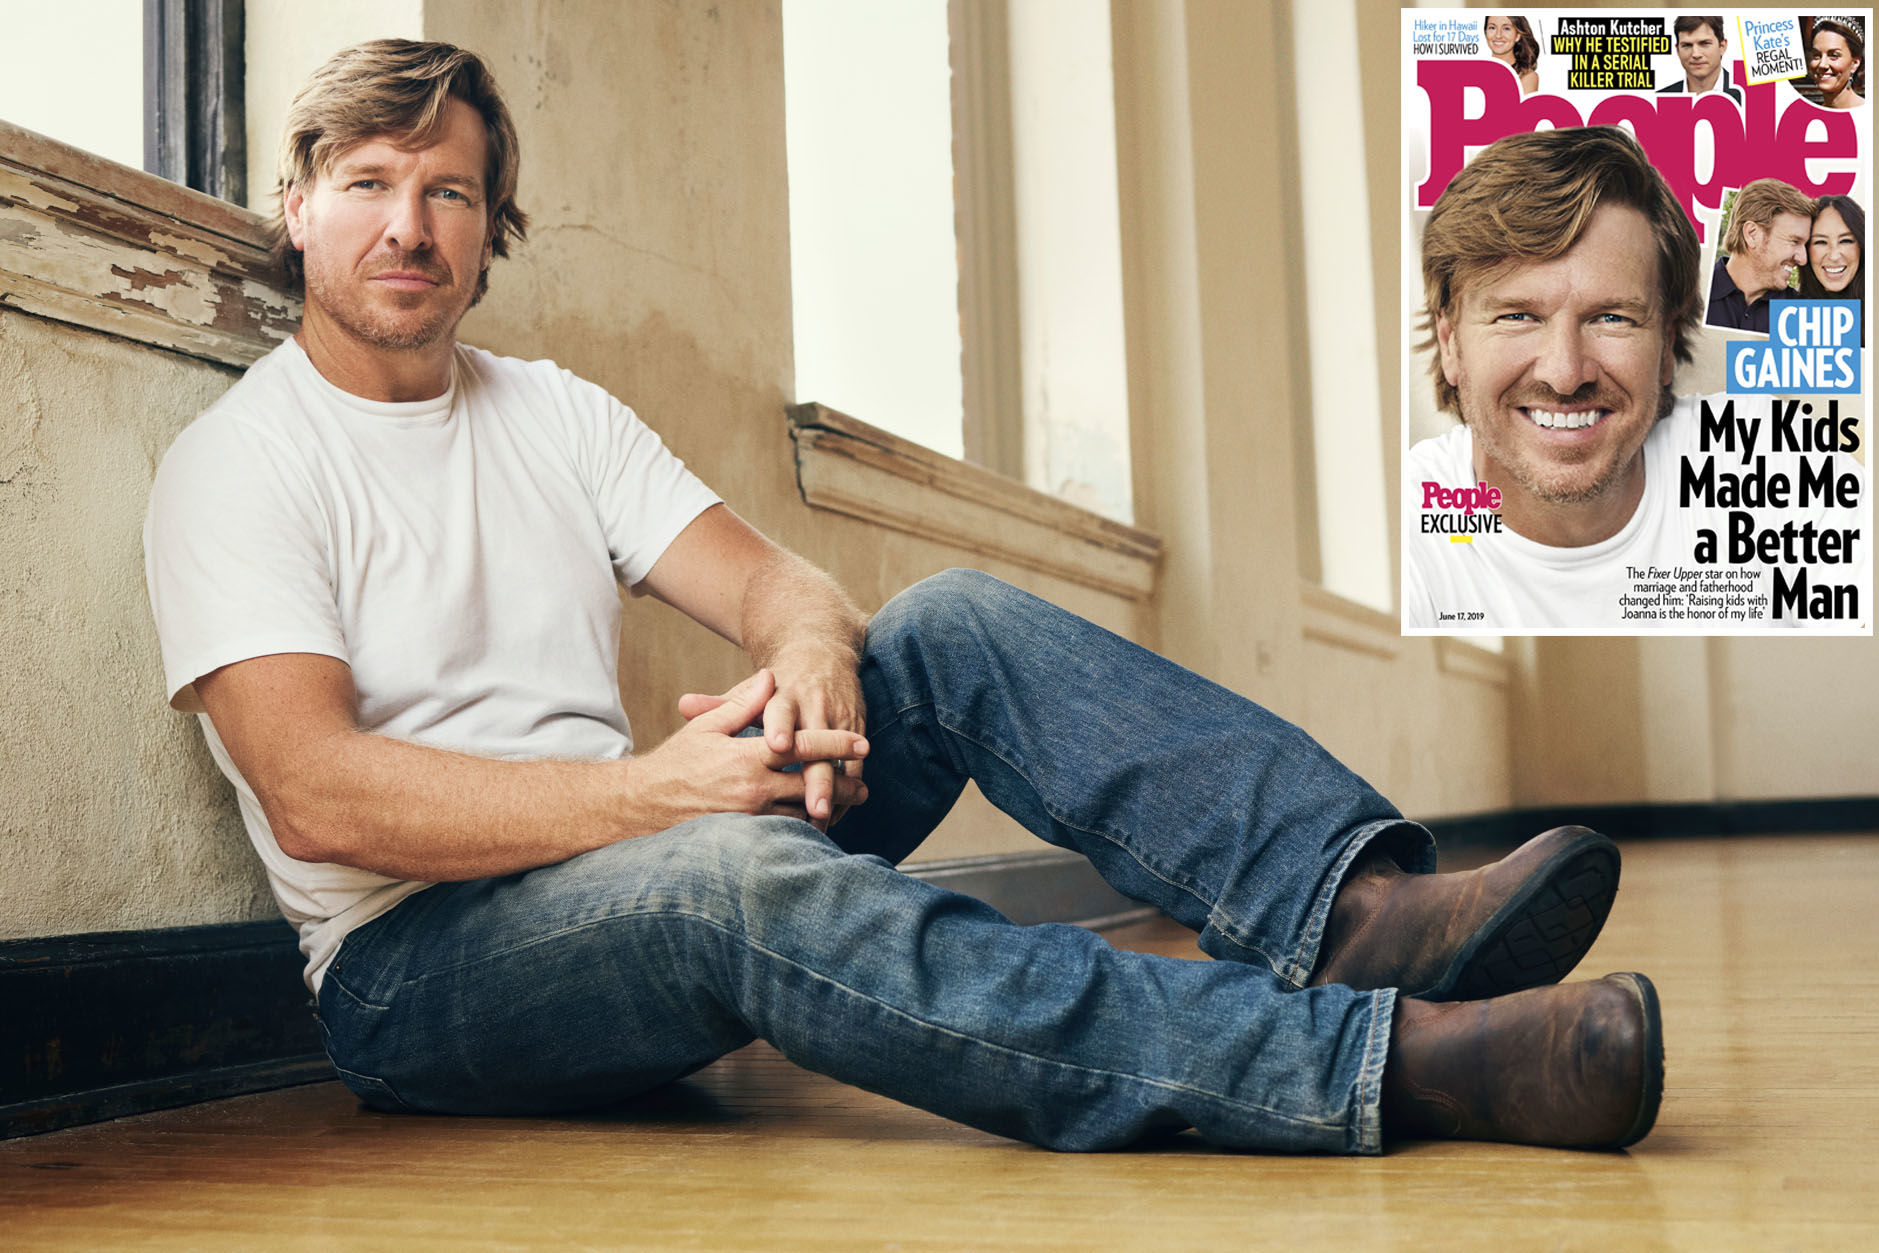 Chip Gaines on His Transition from Bachelor to Married Life with Joanna: 'I Had to Make Changes'